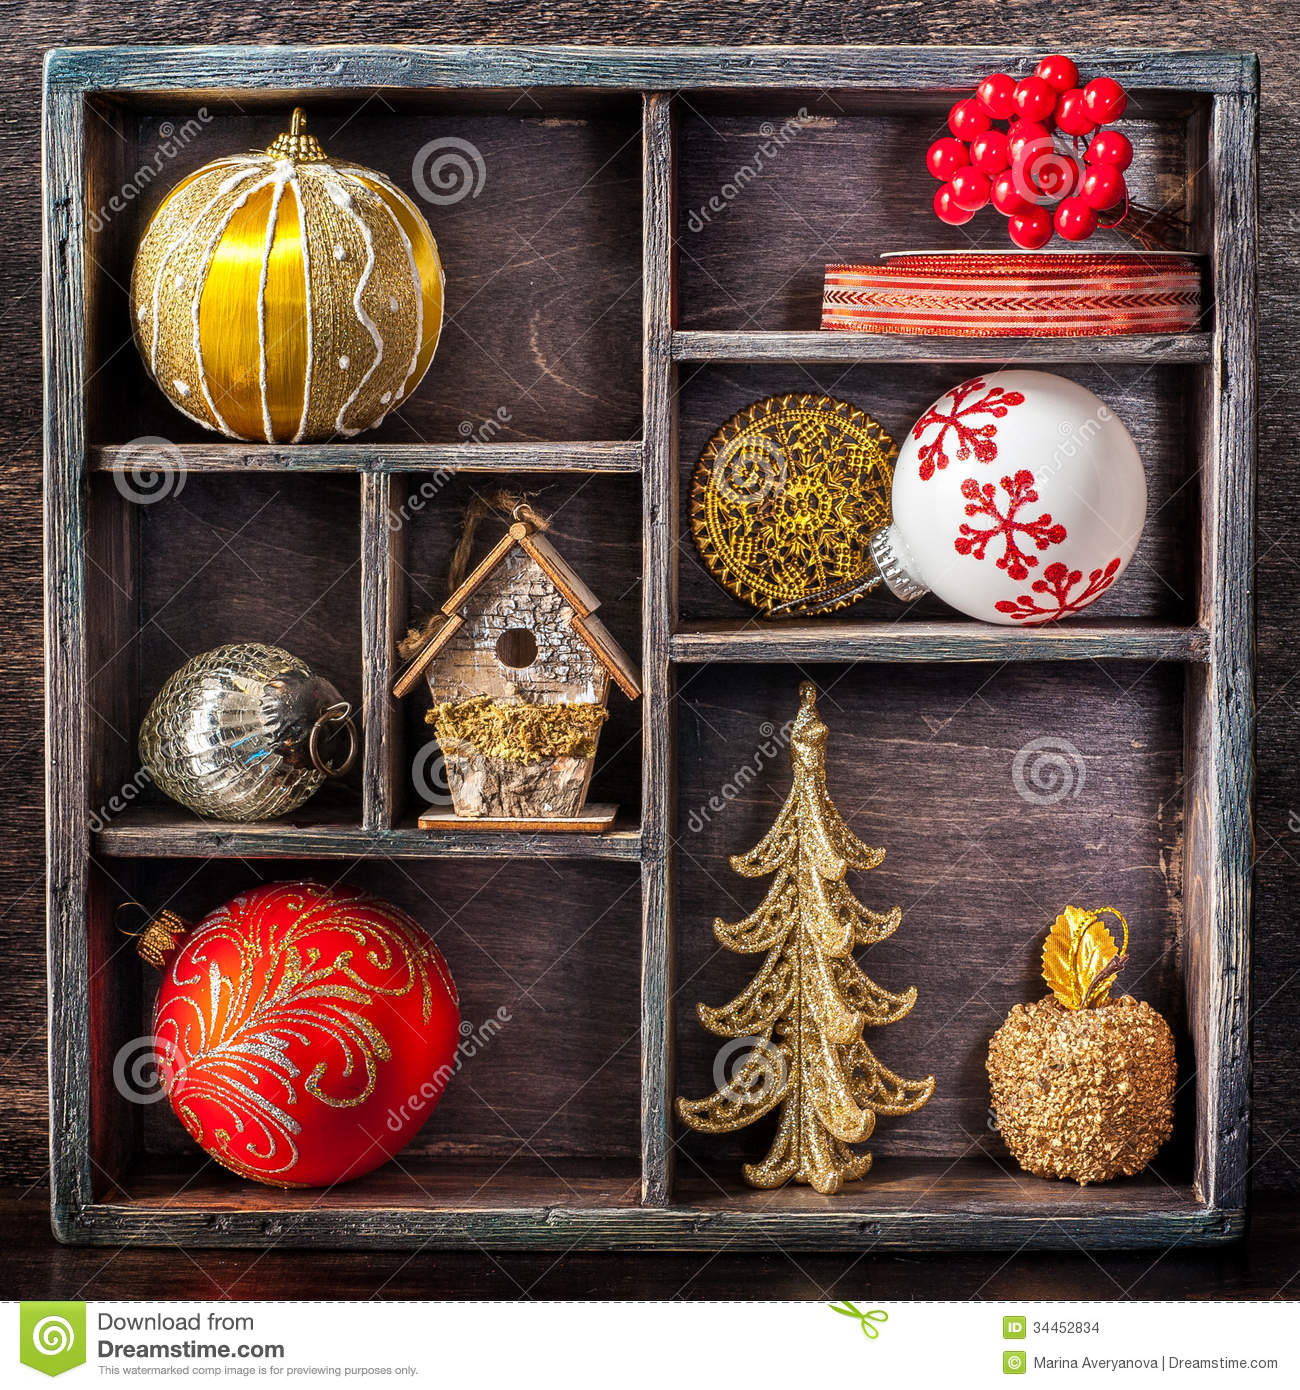 #B5161B Christmas Toys And Decorations In A Vintage Wooden Tray  5535 décorations de noel vintage 1300x1390 px @ aertt.com